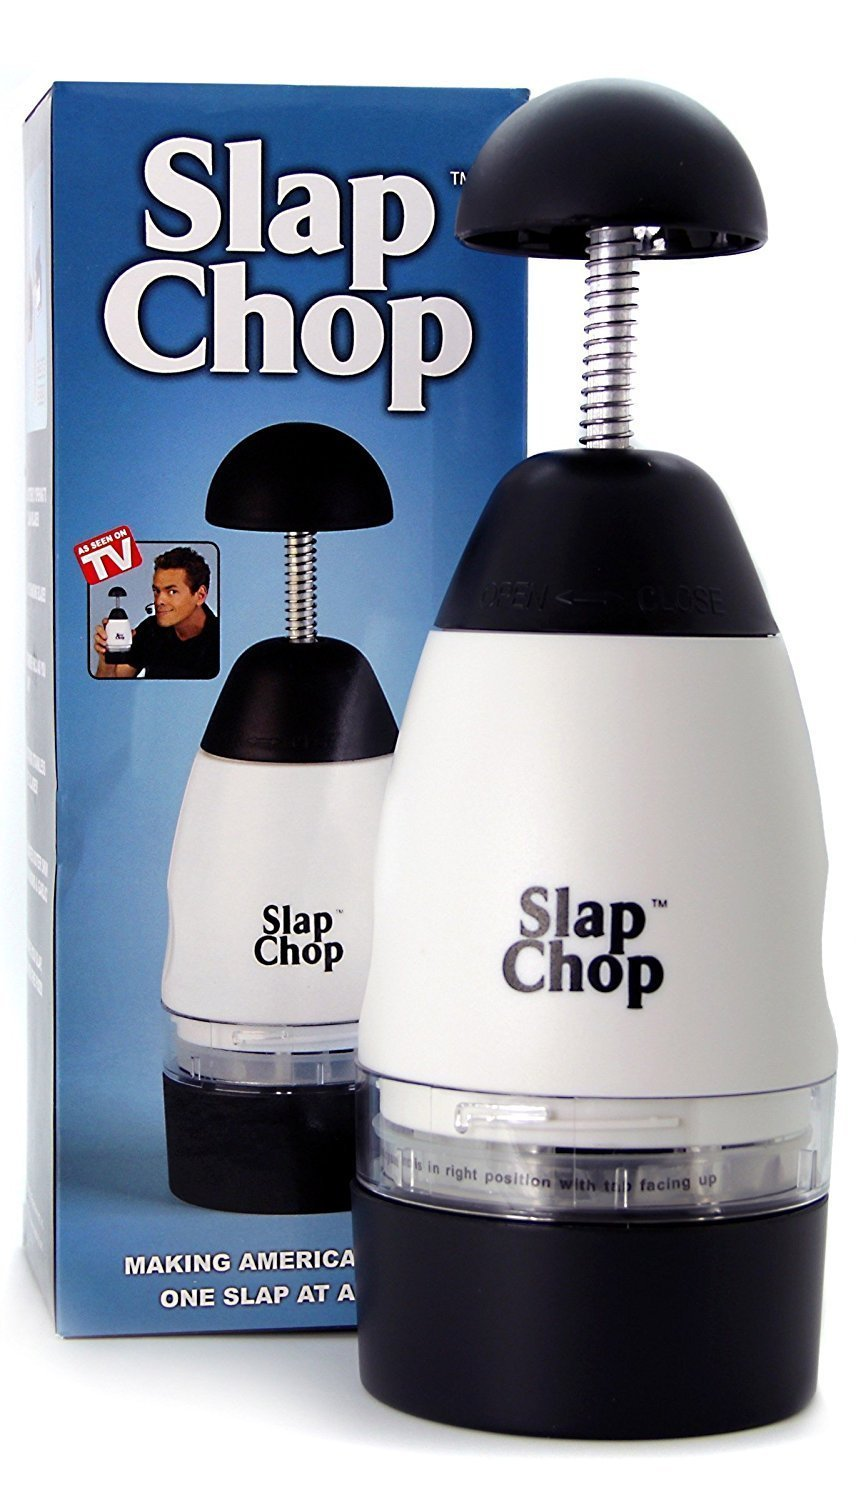 Original Slap Chop Slicer with Stainless Steel Blades | Vegetable Chopper Gadget | Mini Chopper for Salads | Kitchen Accessory by Slap Chop